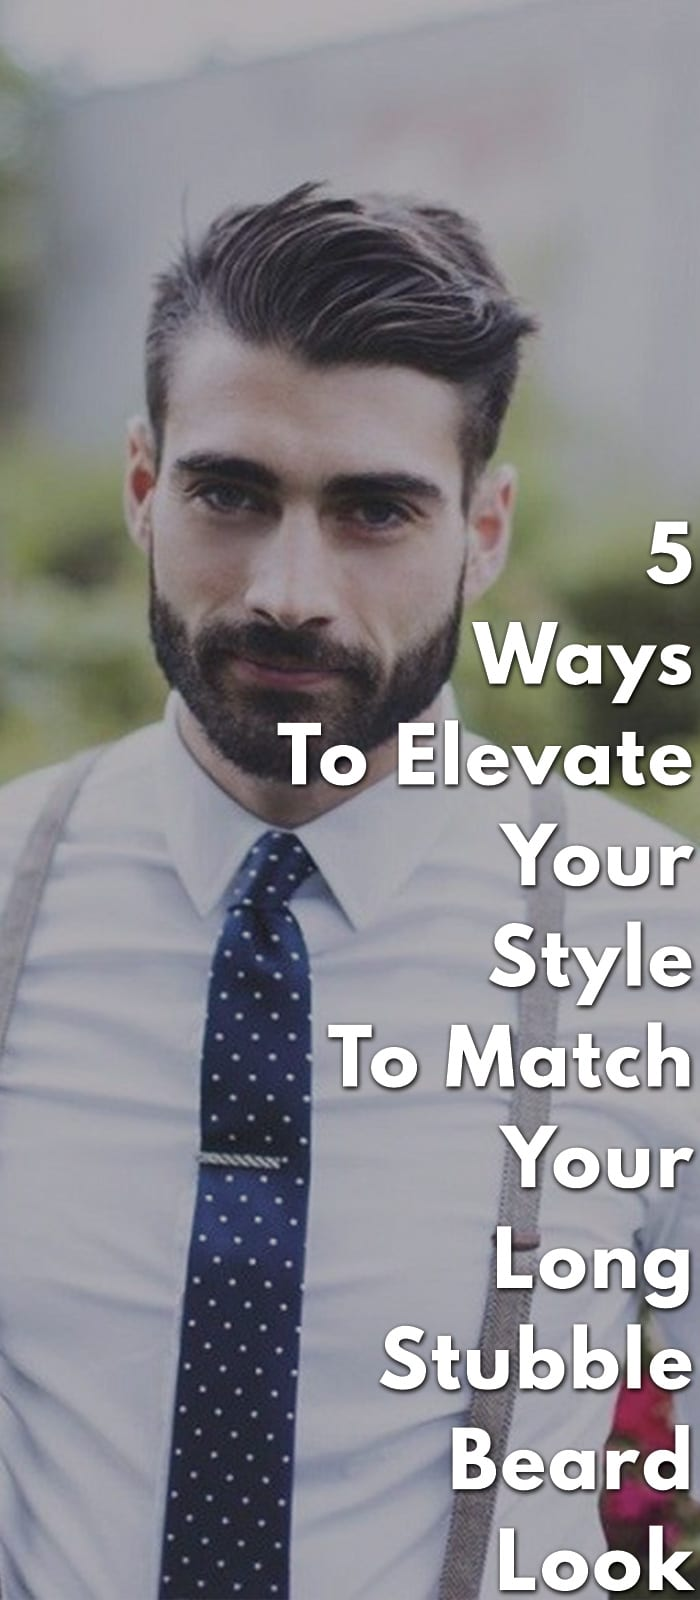 5-Ways-To-Elevate-Your-Style-To-Match-Your-Long-Stubble-Beard-Look